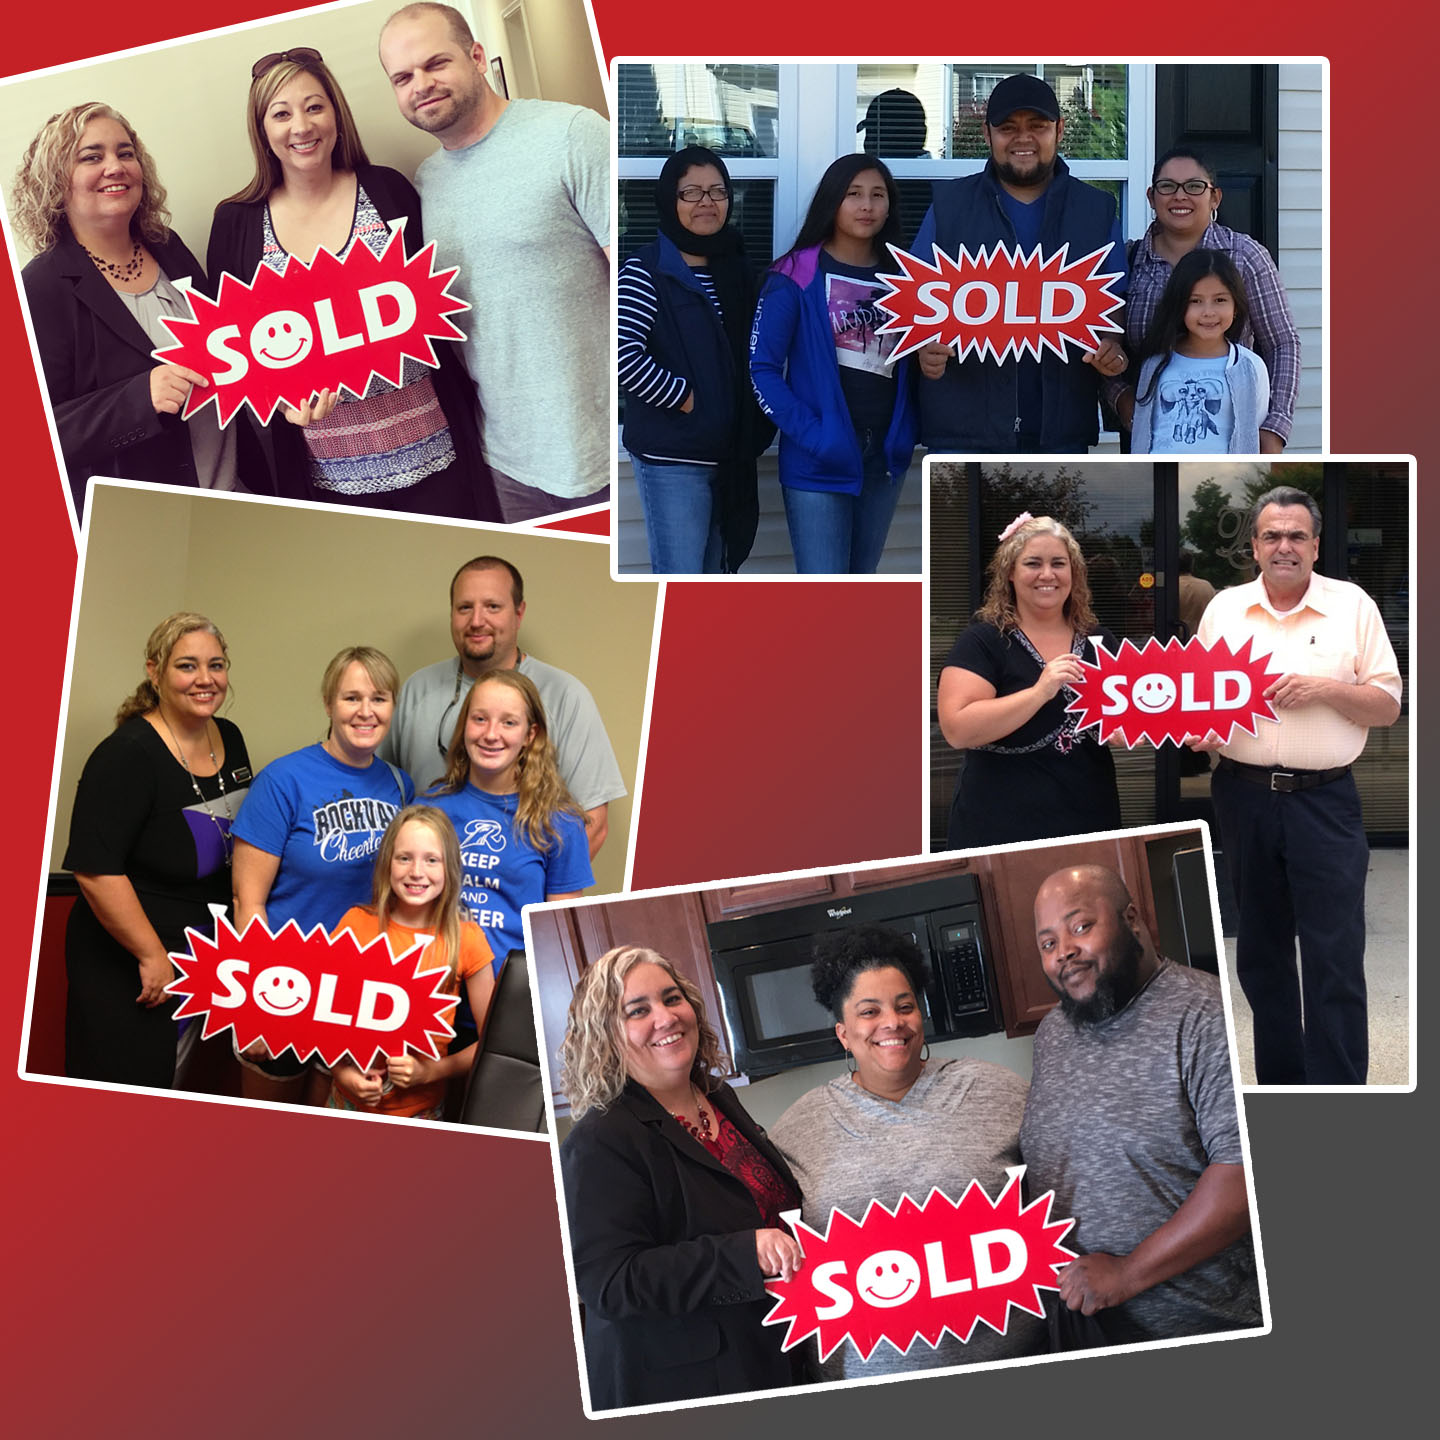 More satisfied clients of Kim Reynolds